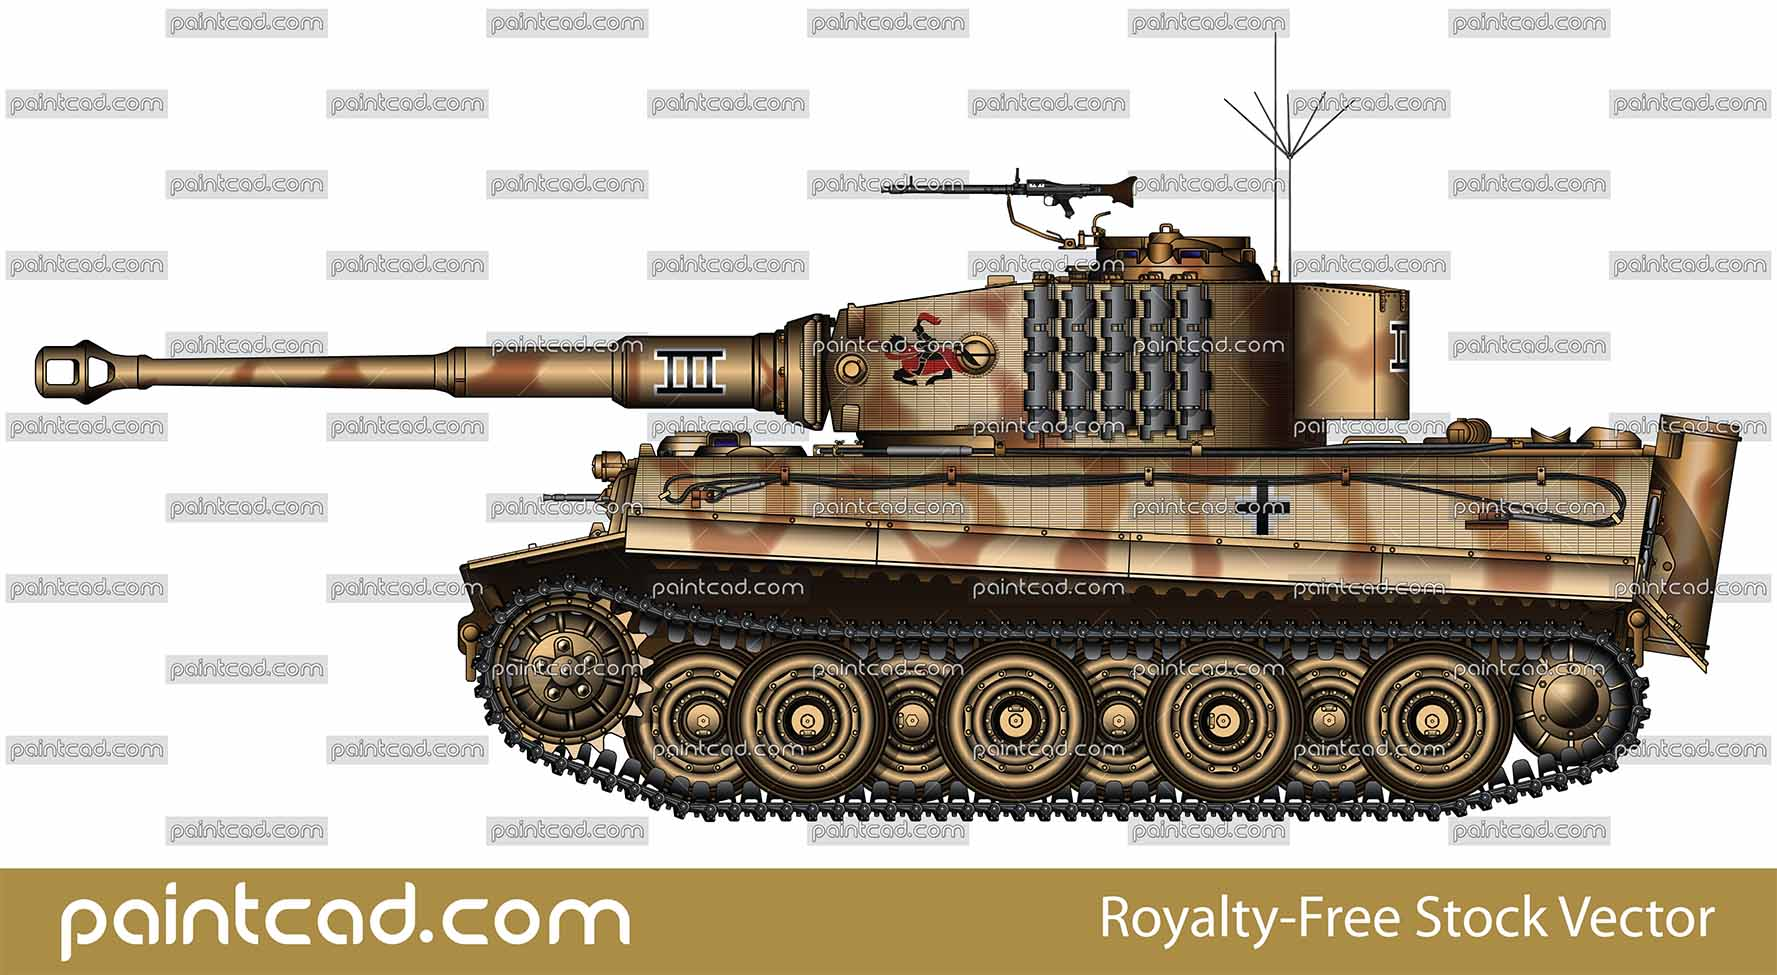 Tiger I Ausf E Befehlstiger command tank - Battle of Kursk - vector illustration